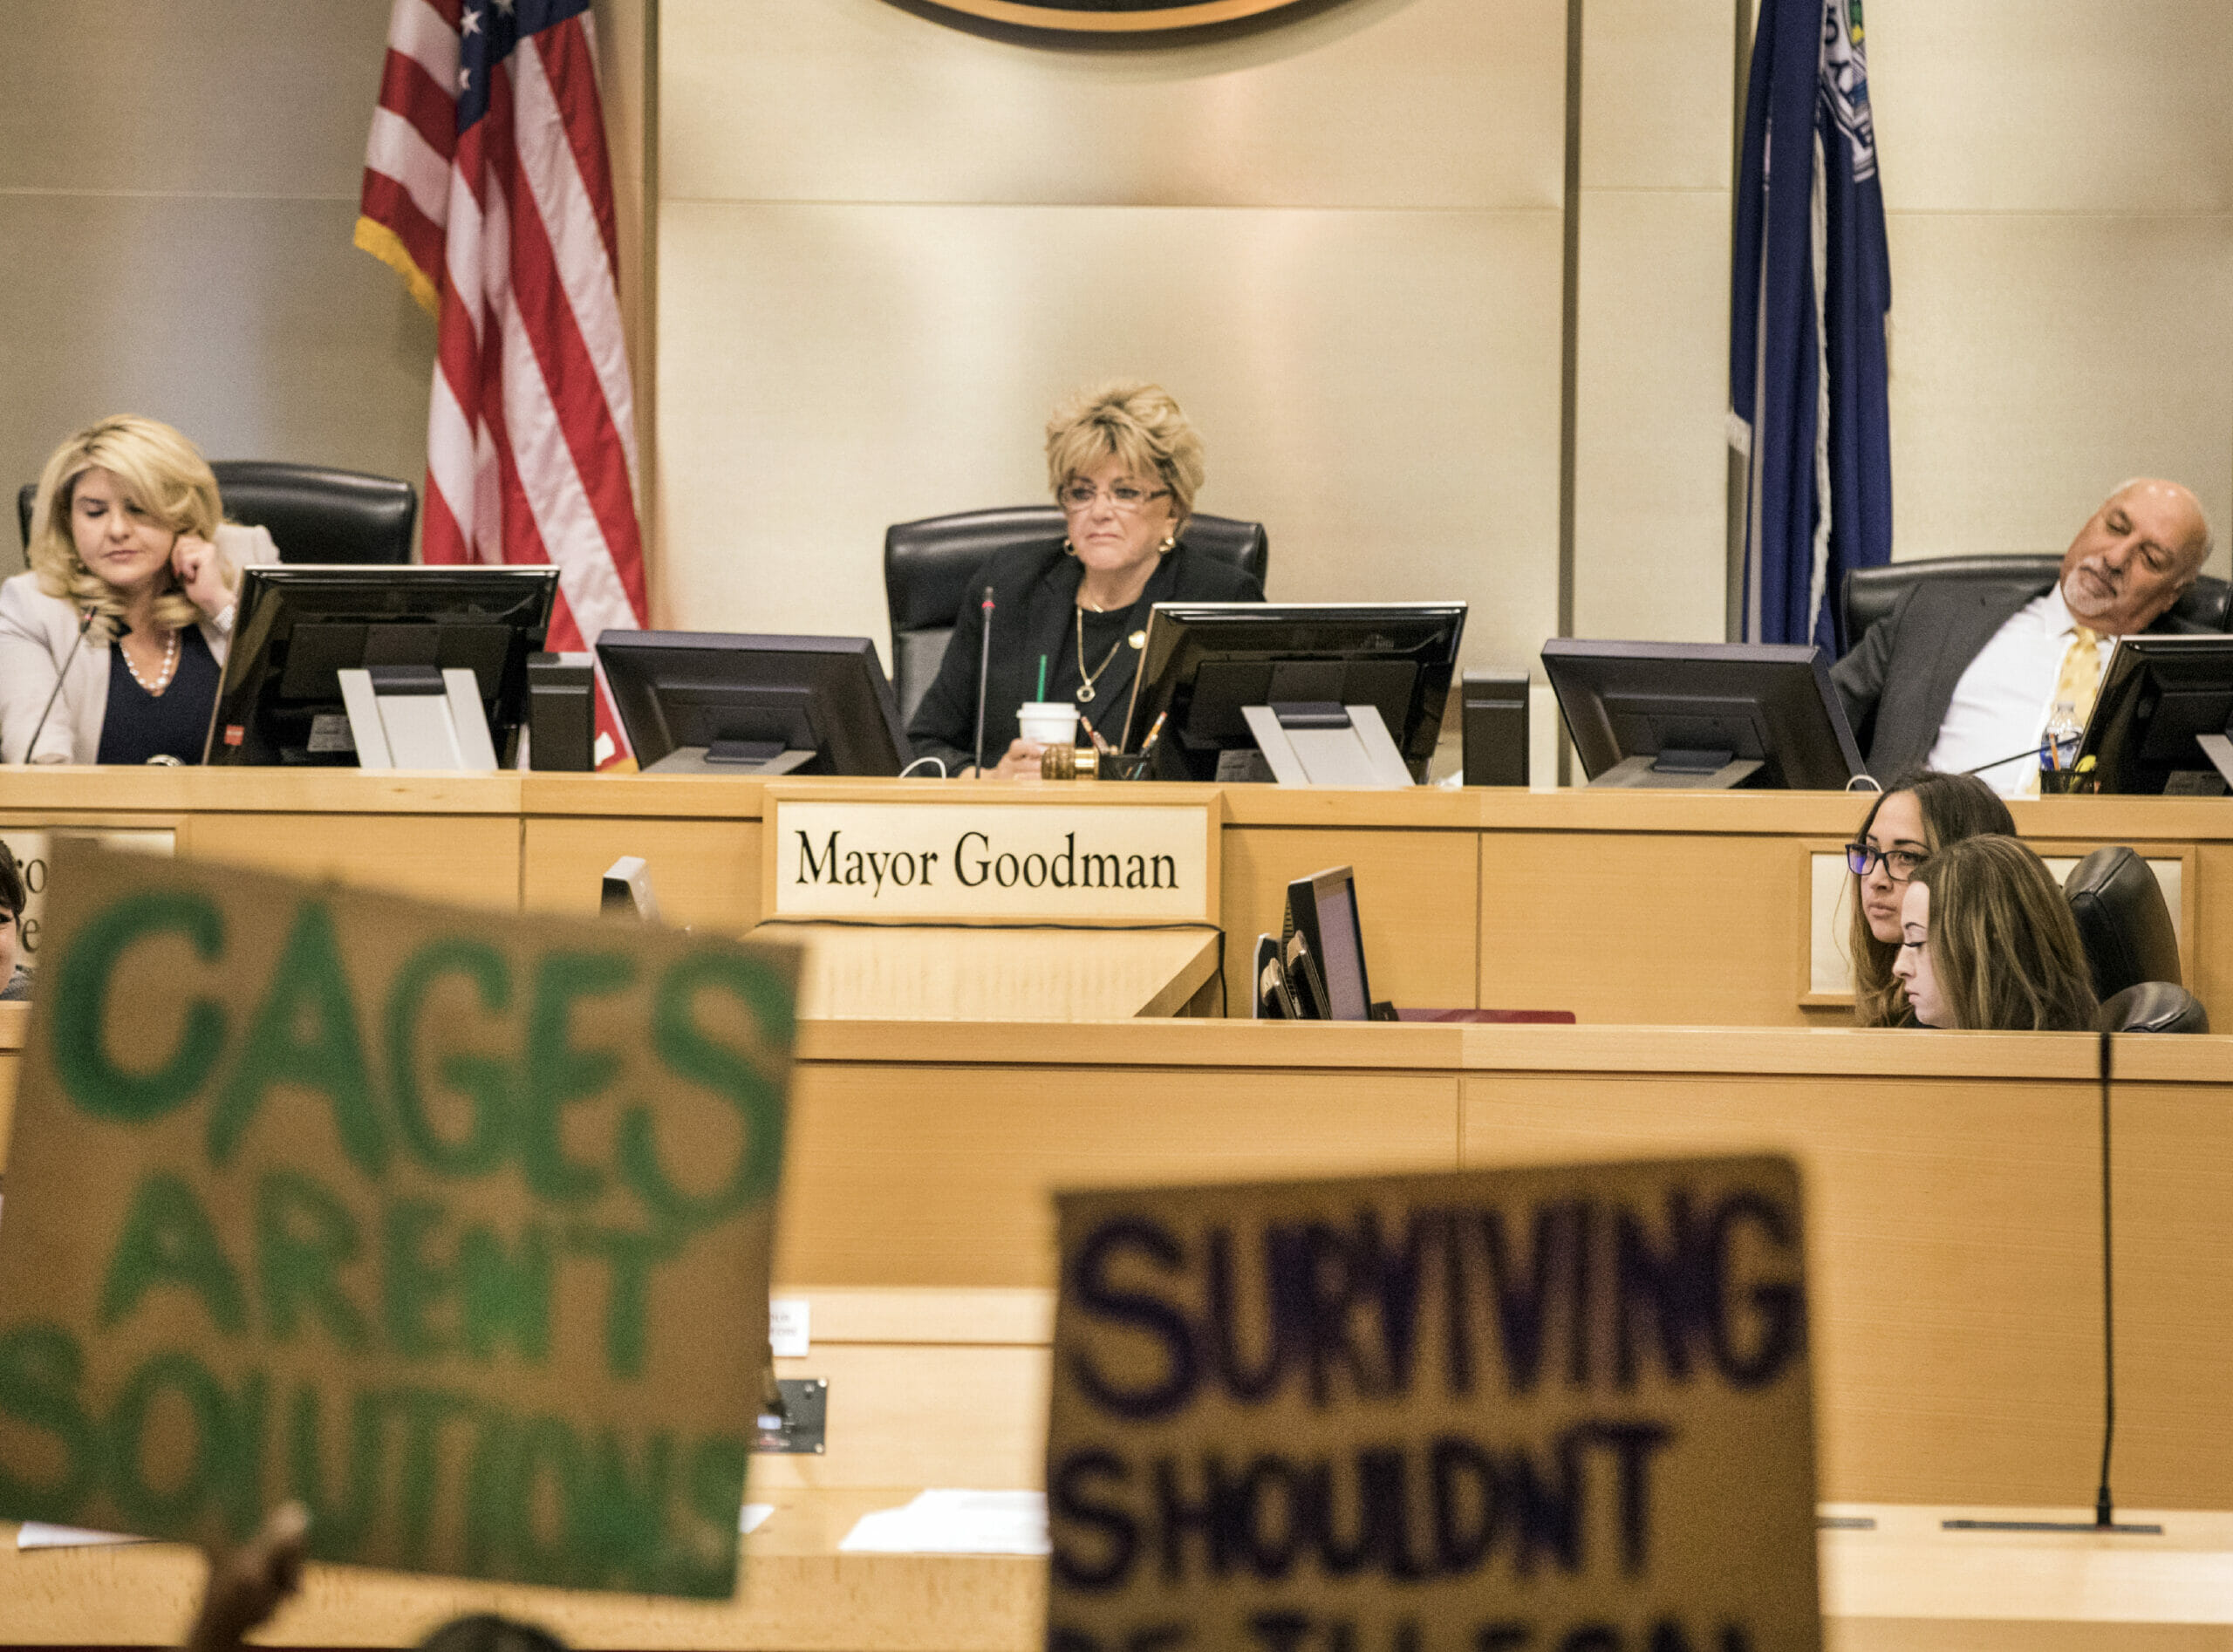 Protesters with signs at city council meeting